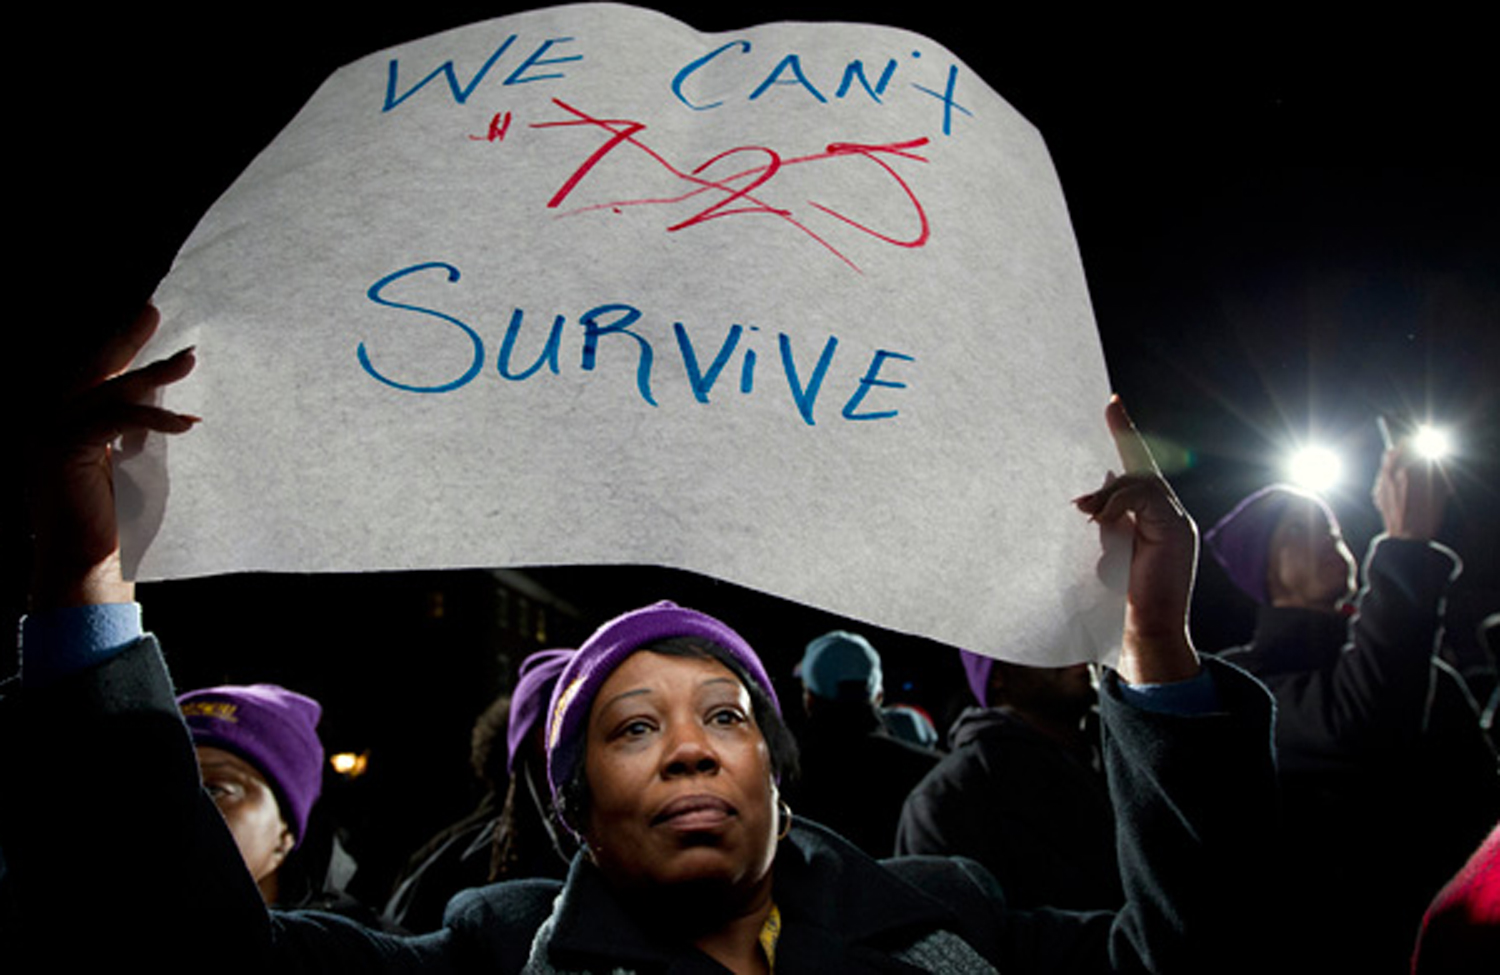 A-protester-at-a-rally-to-support-raising-the-minimum-wage-in-Maryland